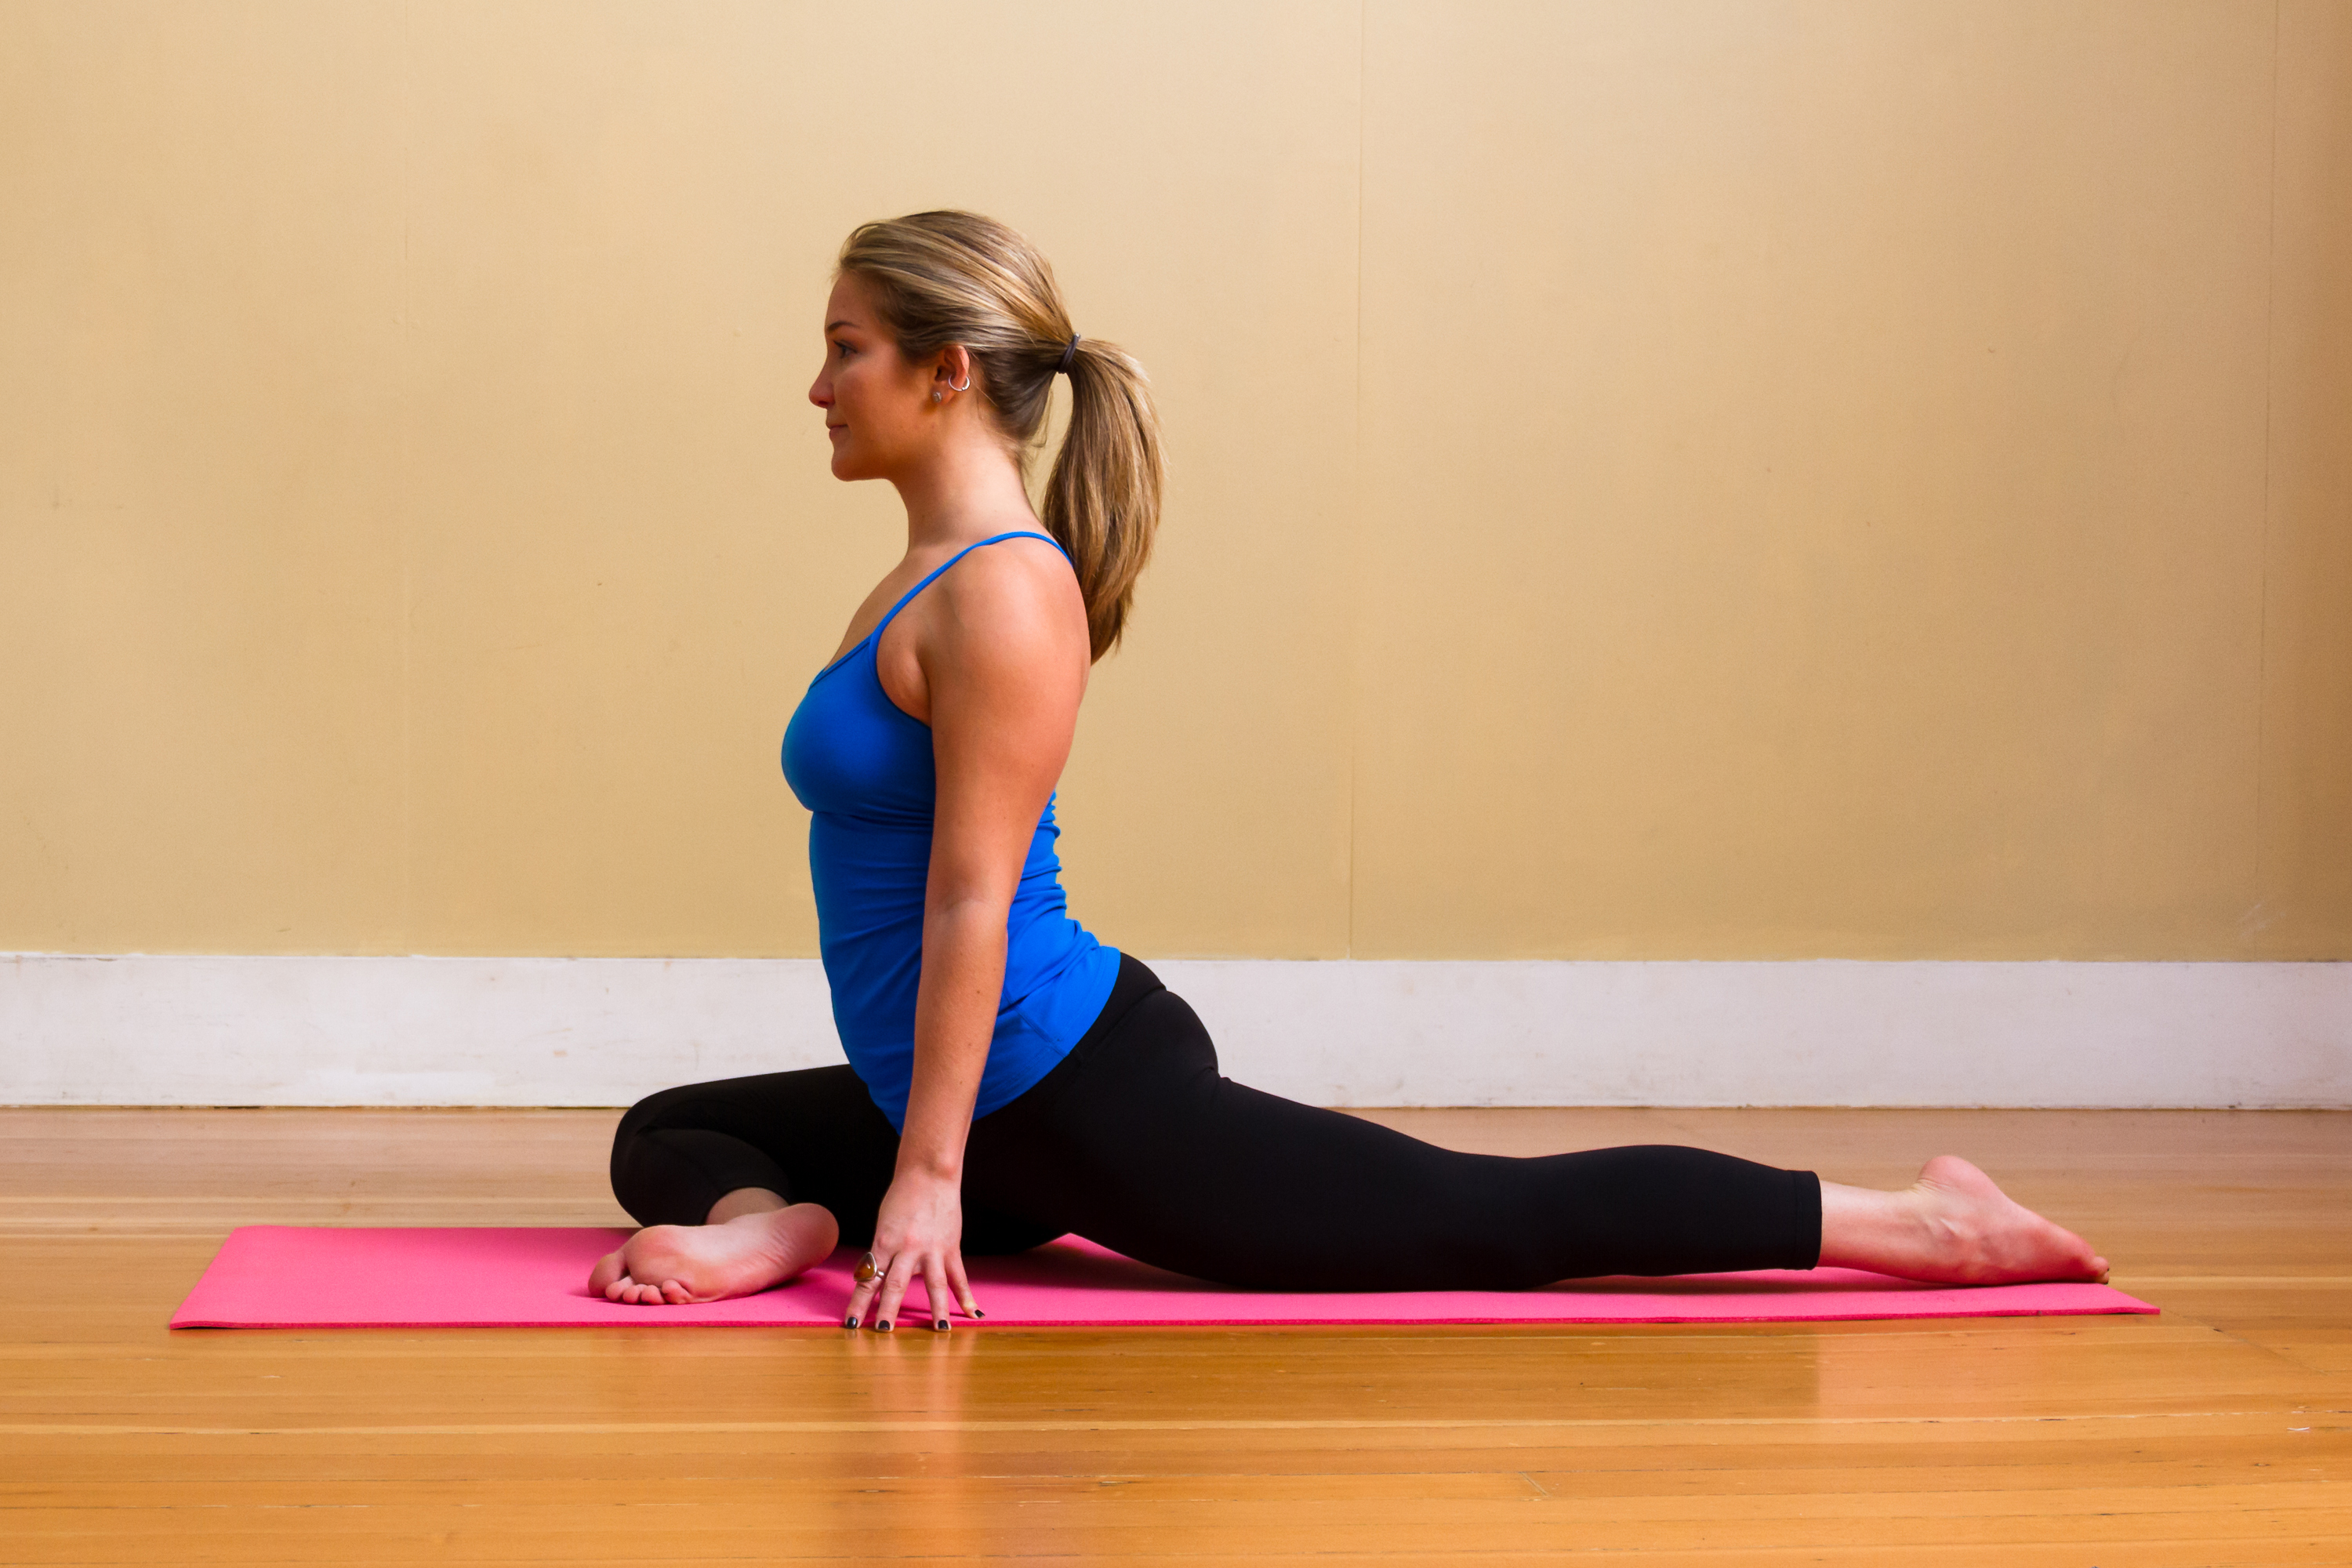 3 Yoga Poses To Help You Relax